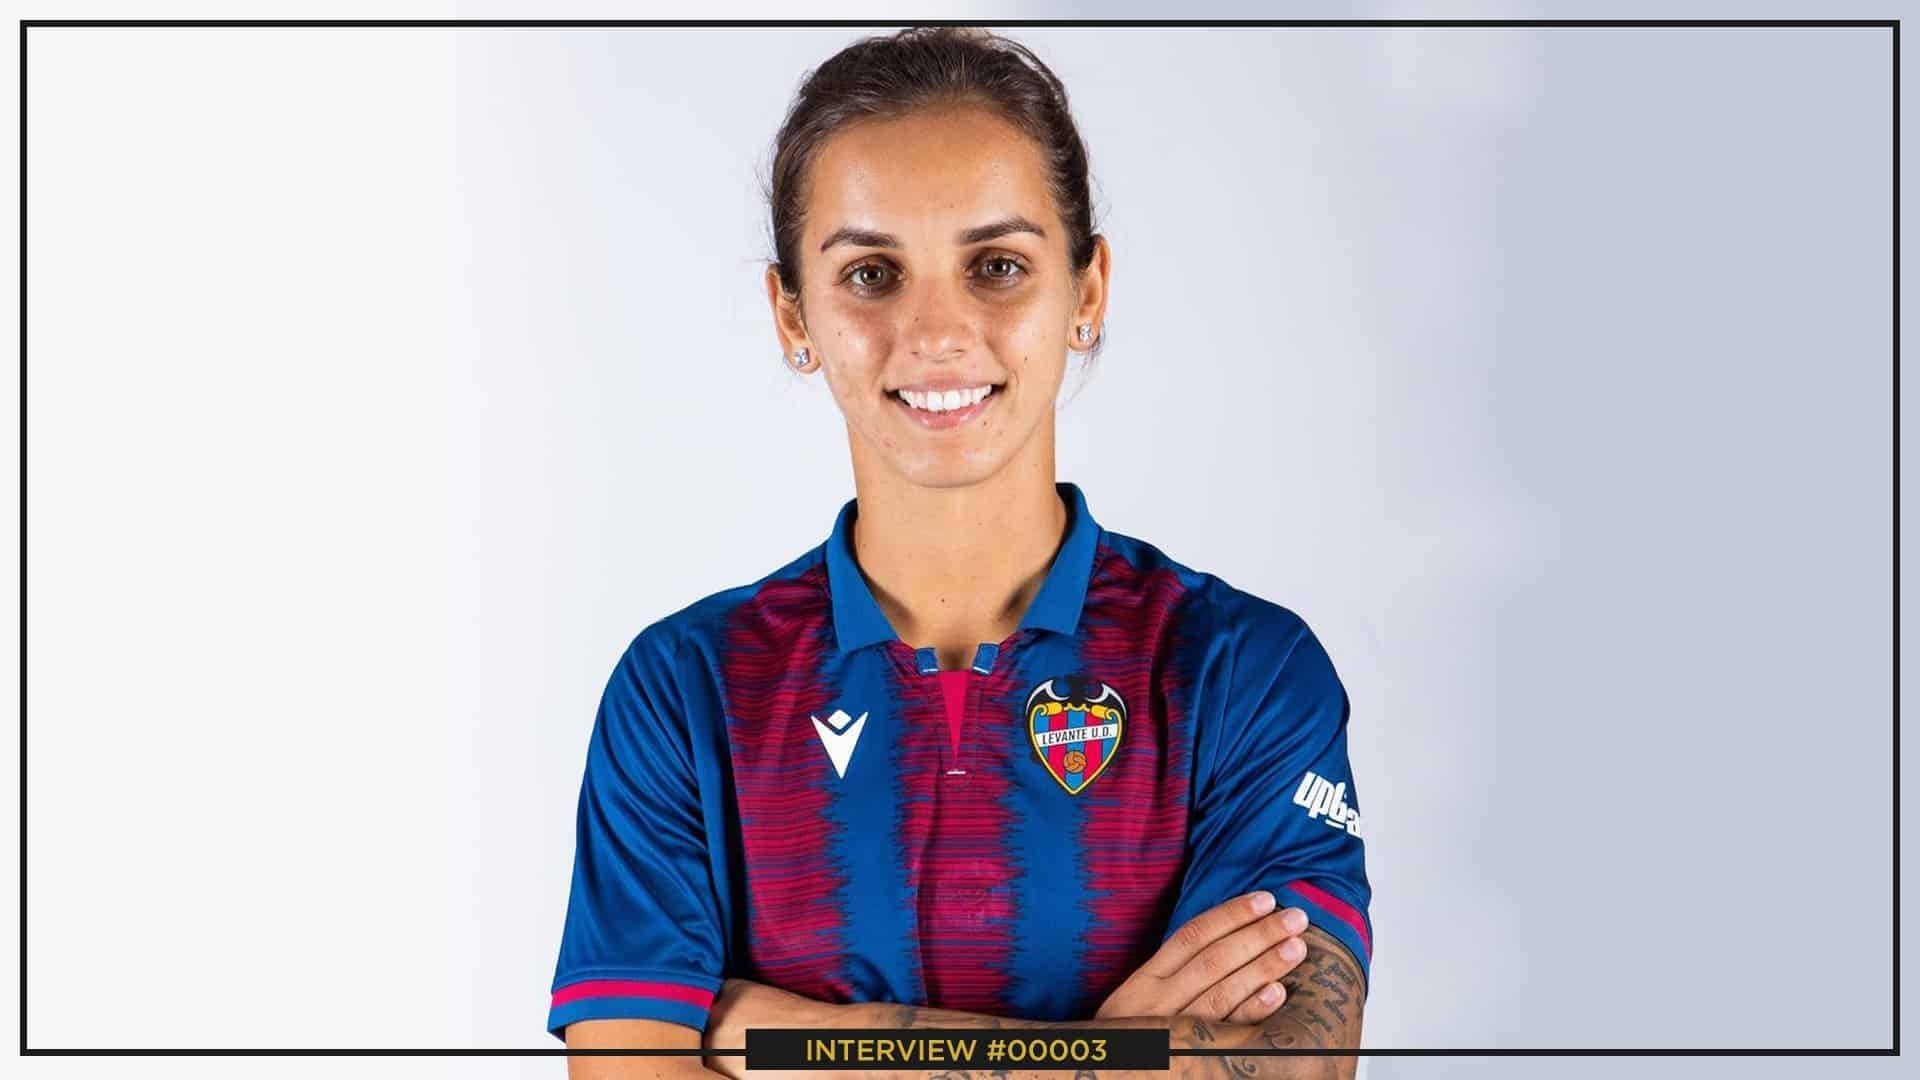 Natasa Andonova smiling with white teeth and staring straight at the camera, on a white background. She is wearing her Levante jersey.